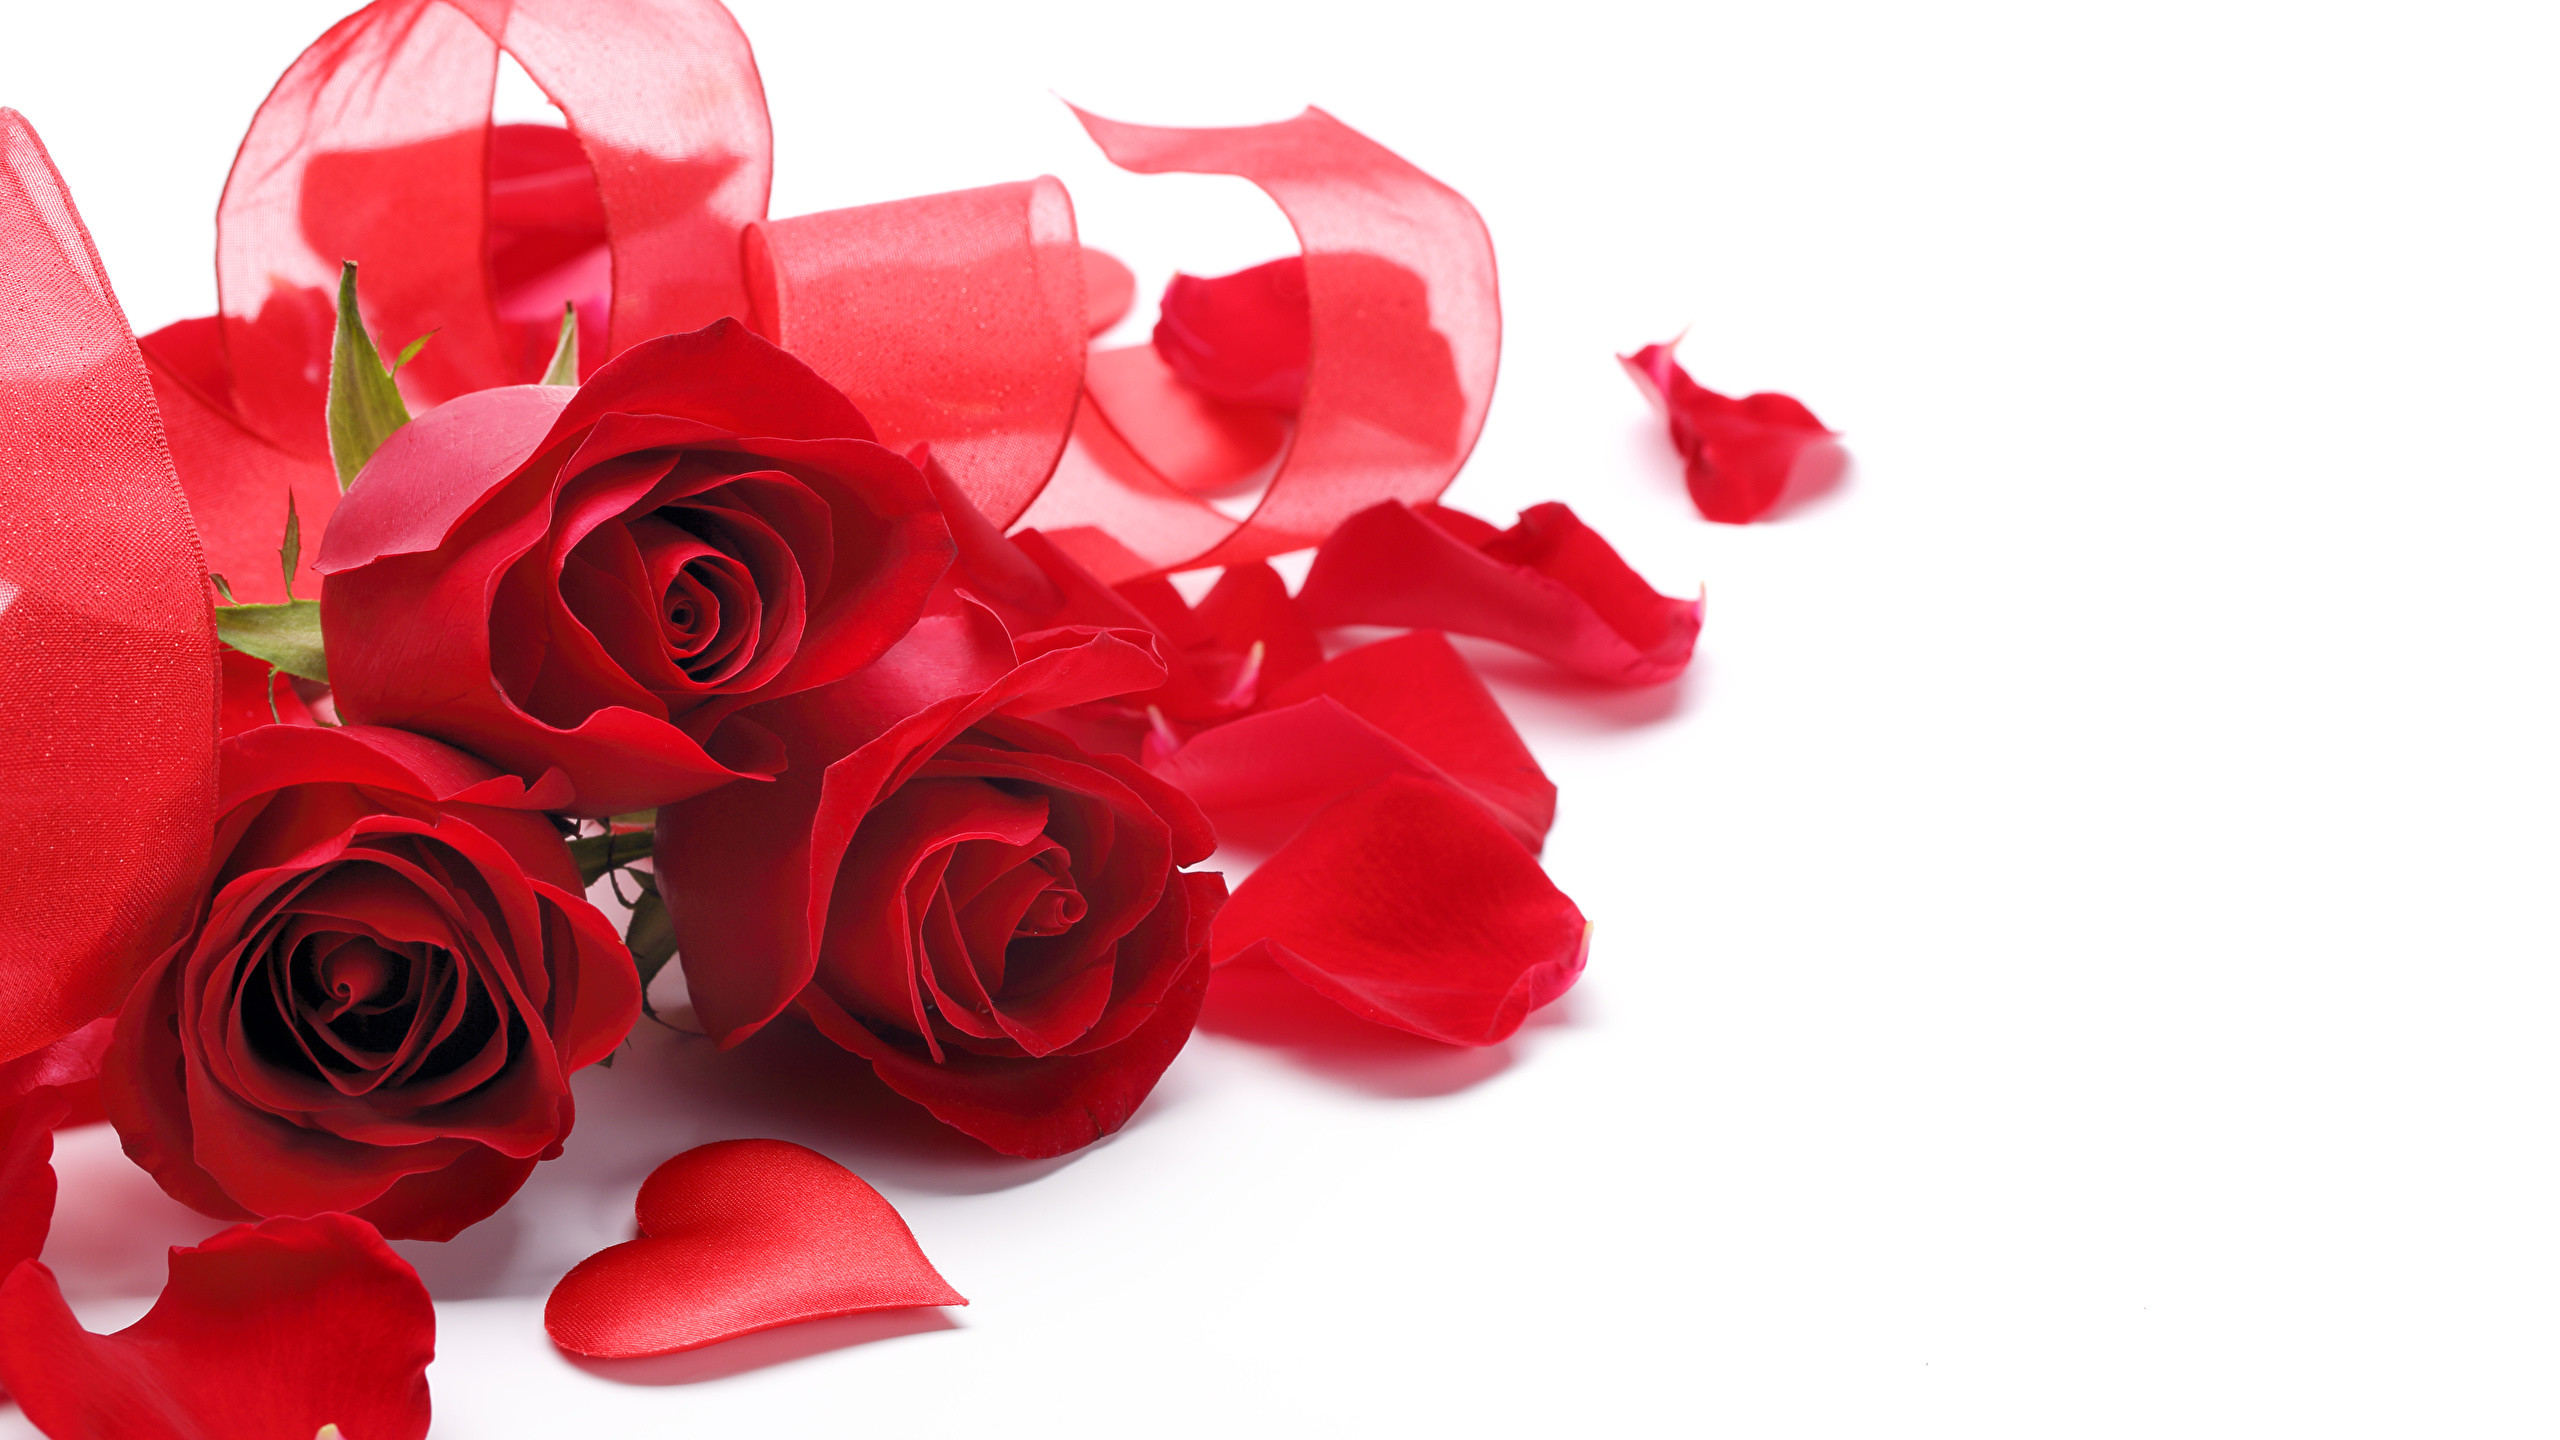 2560x1440 Pictures Heart Red Roses Petals Flowers Three 3 White background